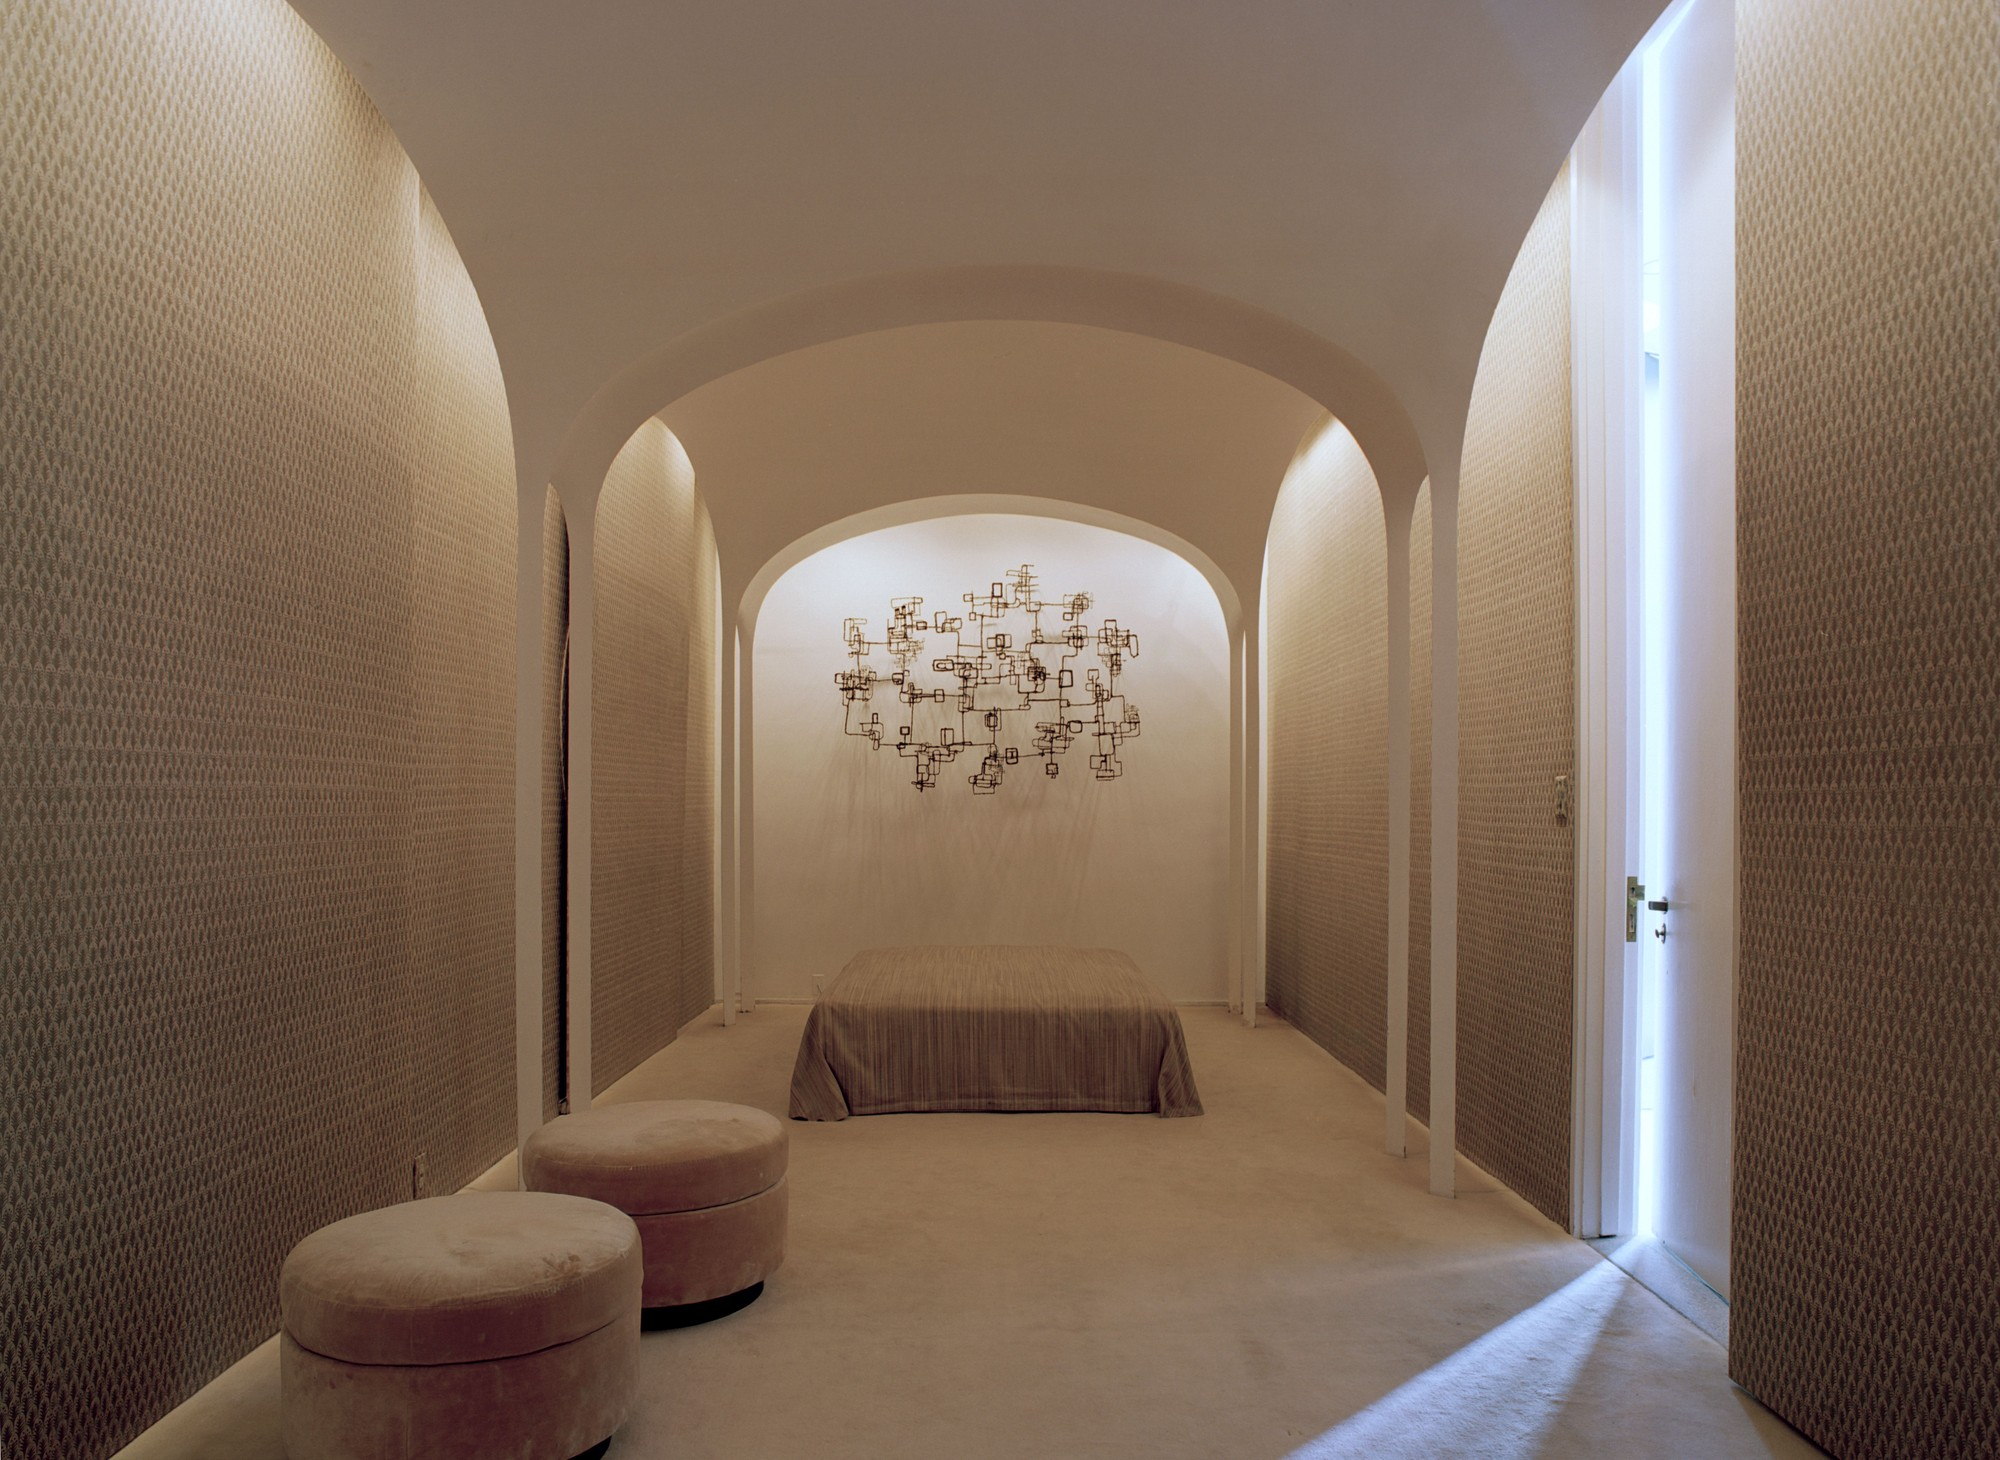 Light Matters: Creating Walls of Light | ArchDaily